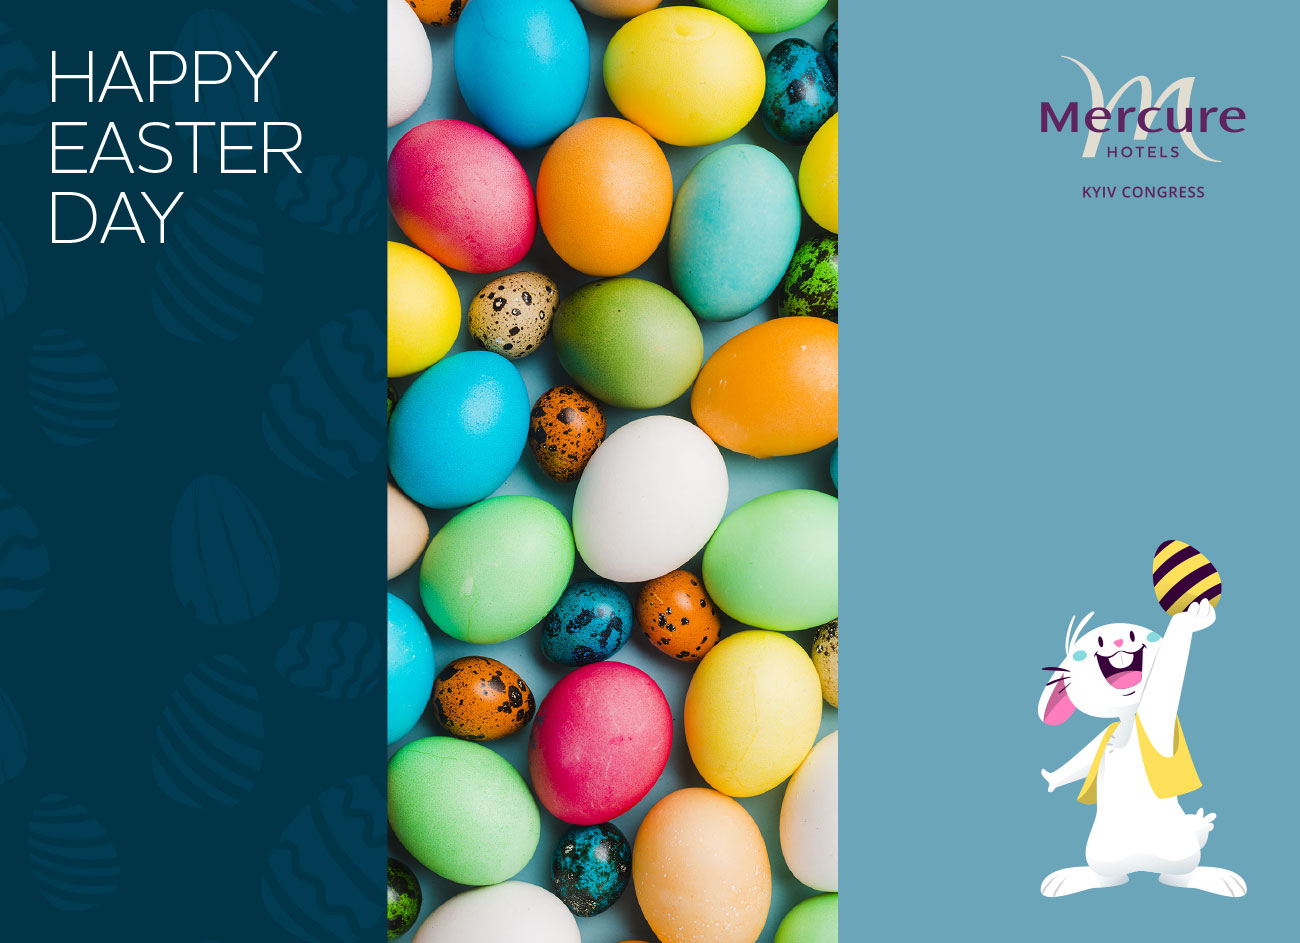 Happy Easter from Mercure!